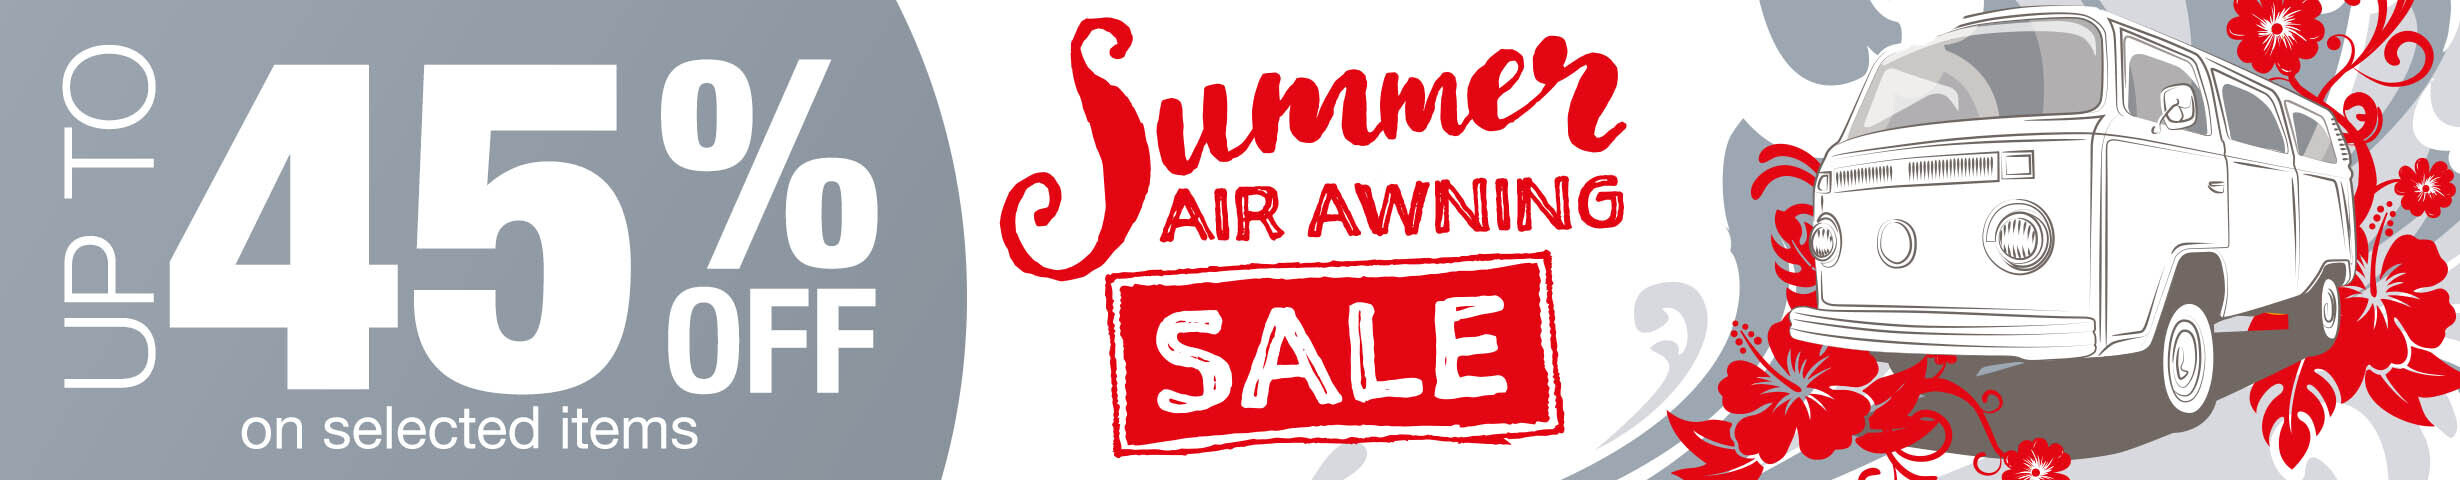 2020 air awning summer sale